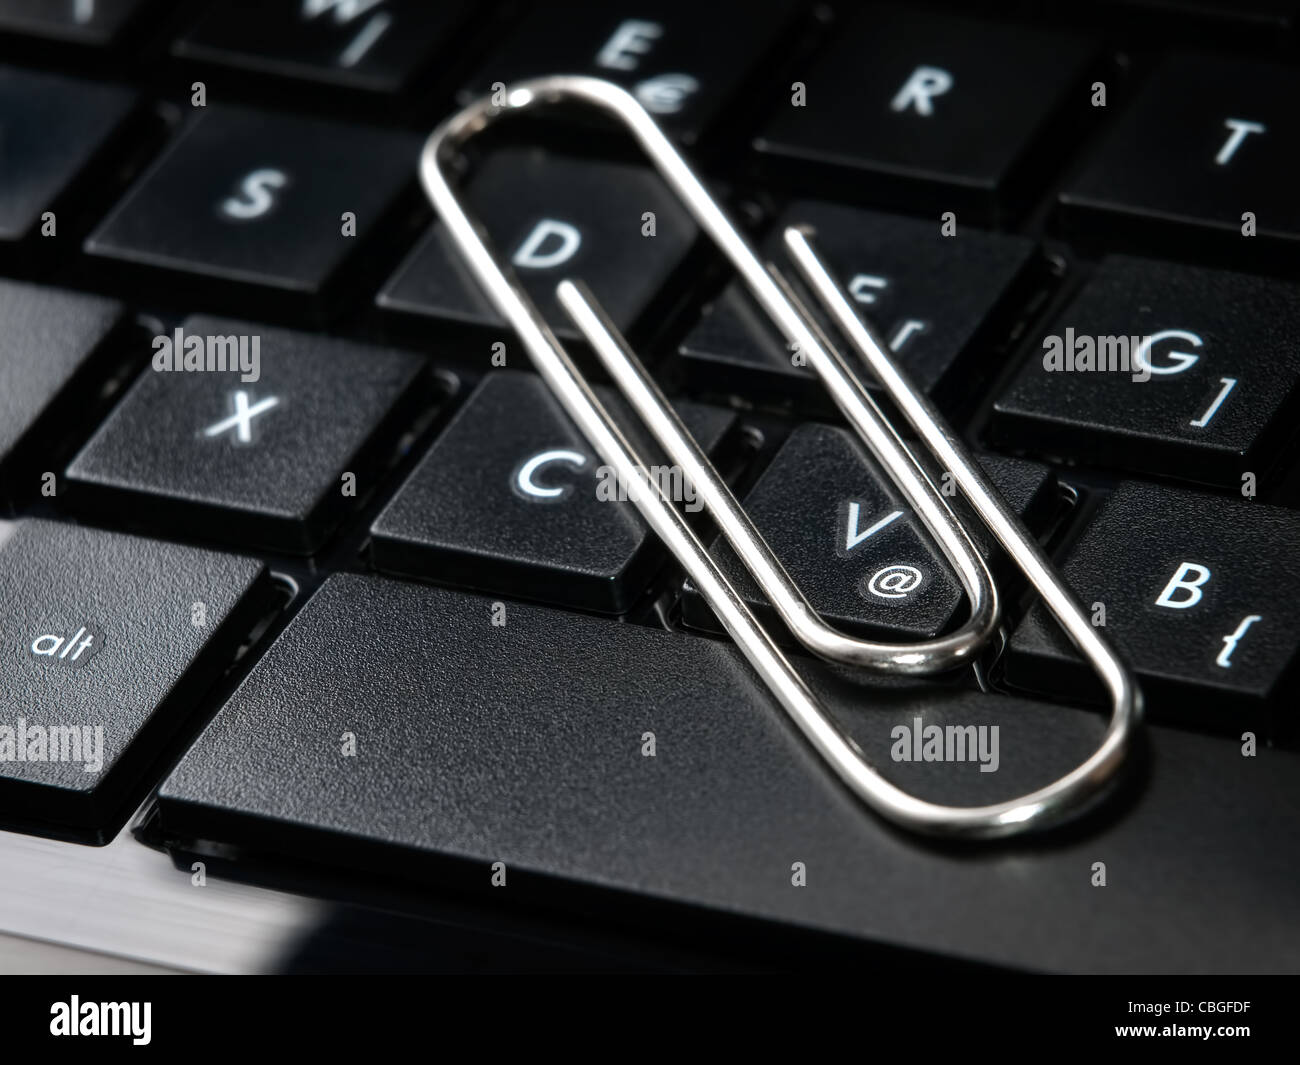 Paper clip on the keyboard as a metaphor about sending an attachment in e-mails. - Stock Image